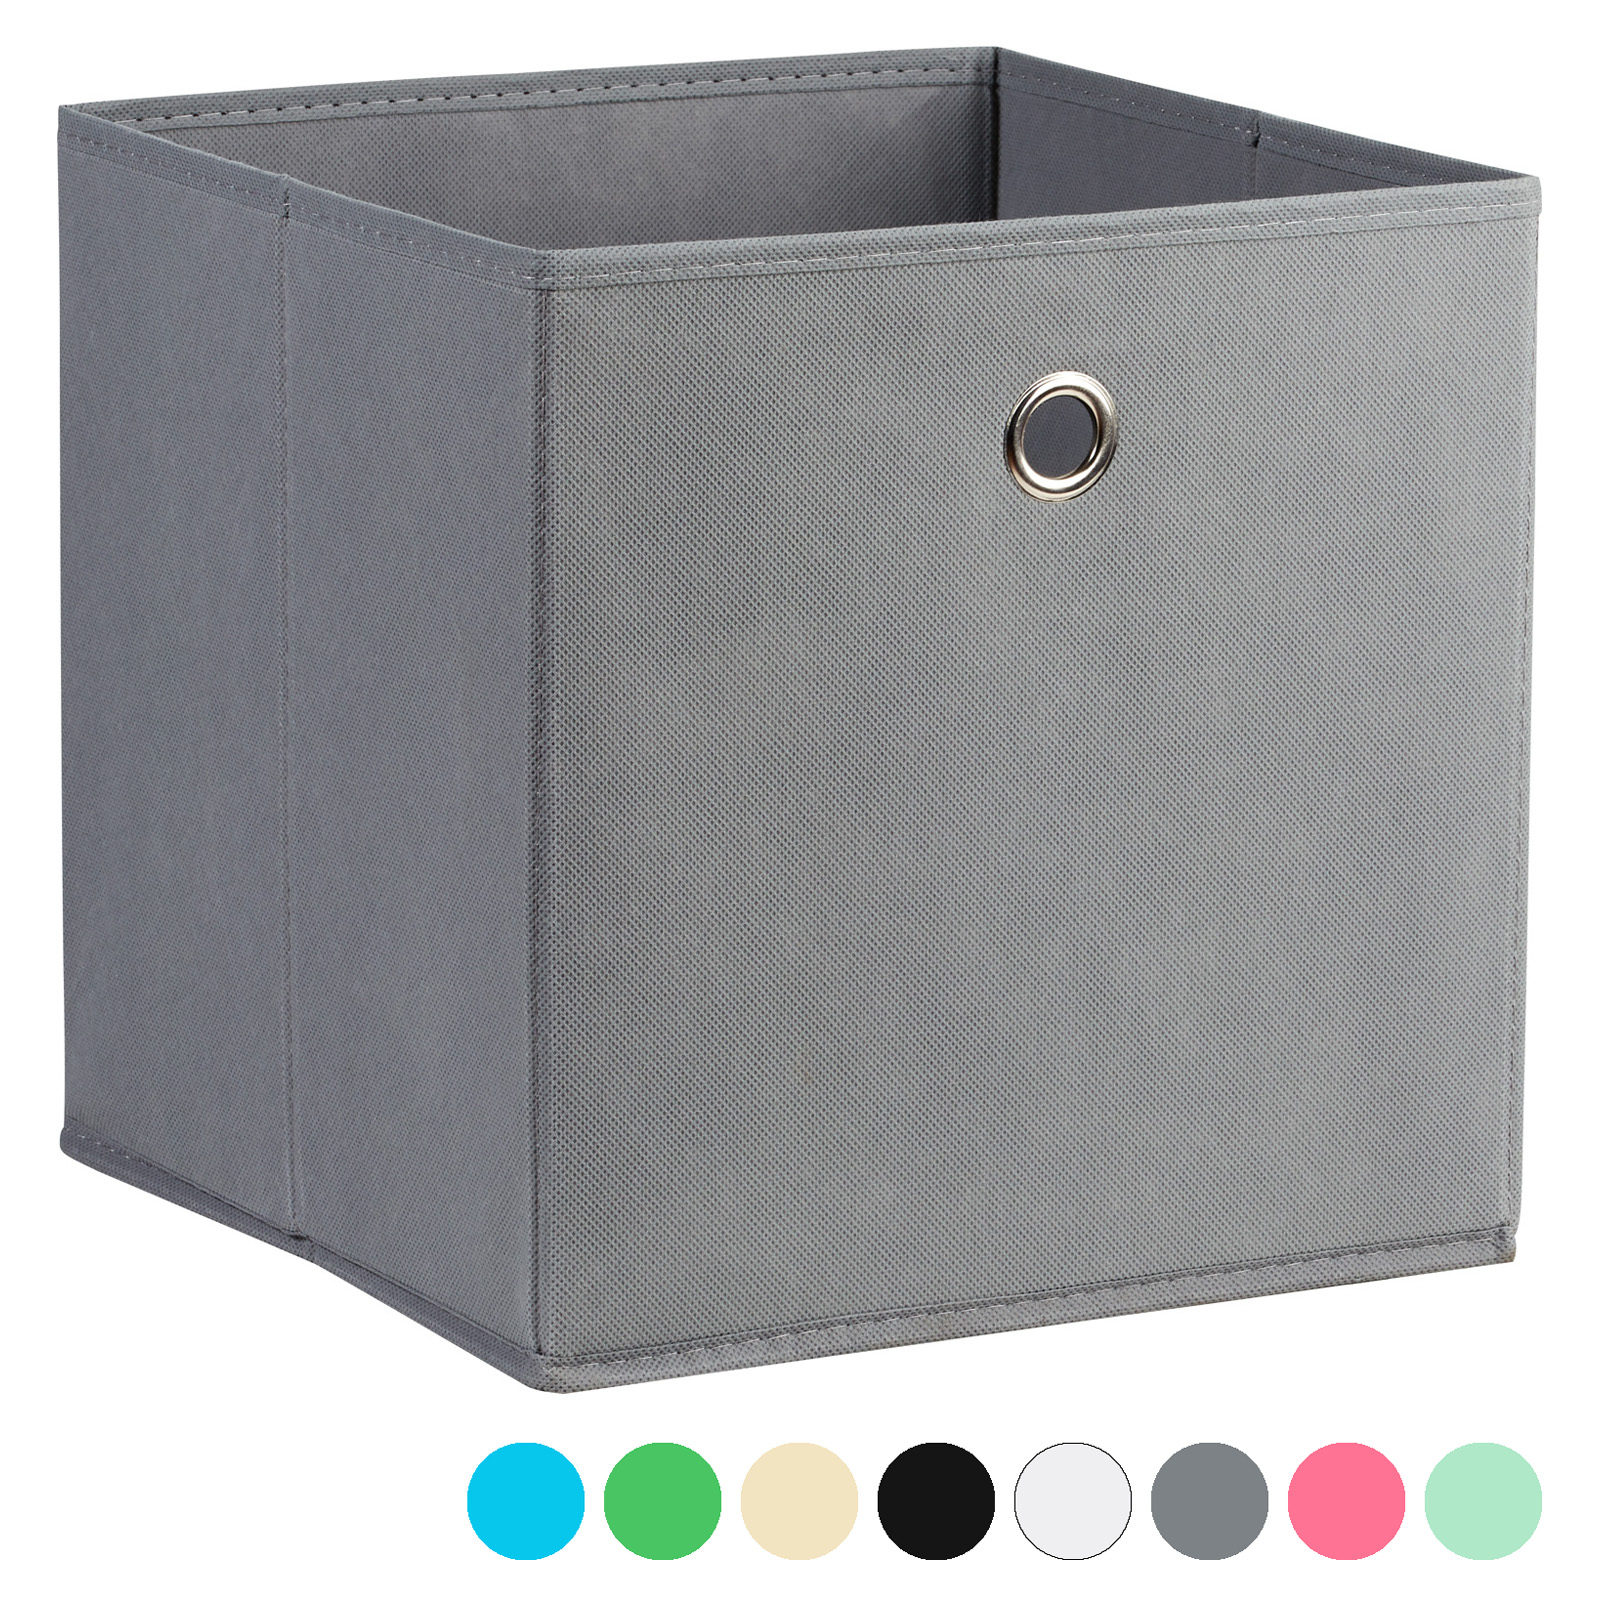 Ordinaire Details About HARTLEYS SQUARE FOLDABLE FABRIC/CANVAS STORAGE BOX CUBE  SHELF/DRAWER ORGANISER